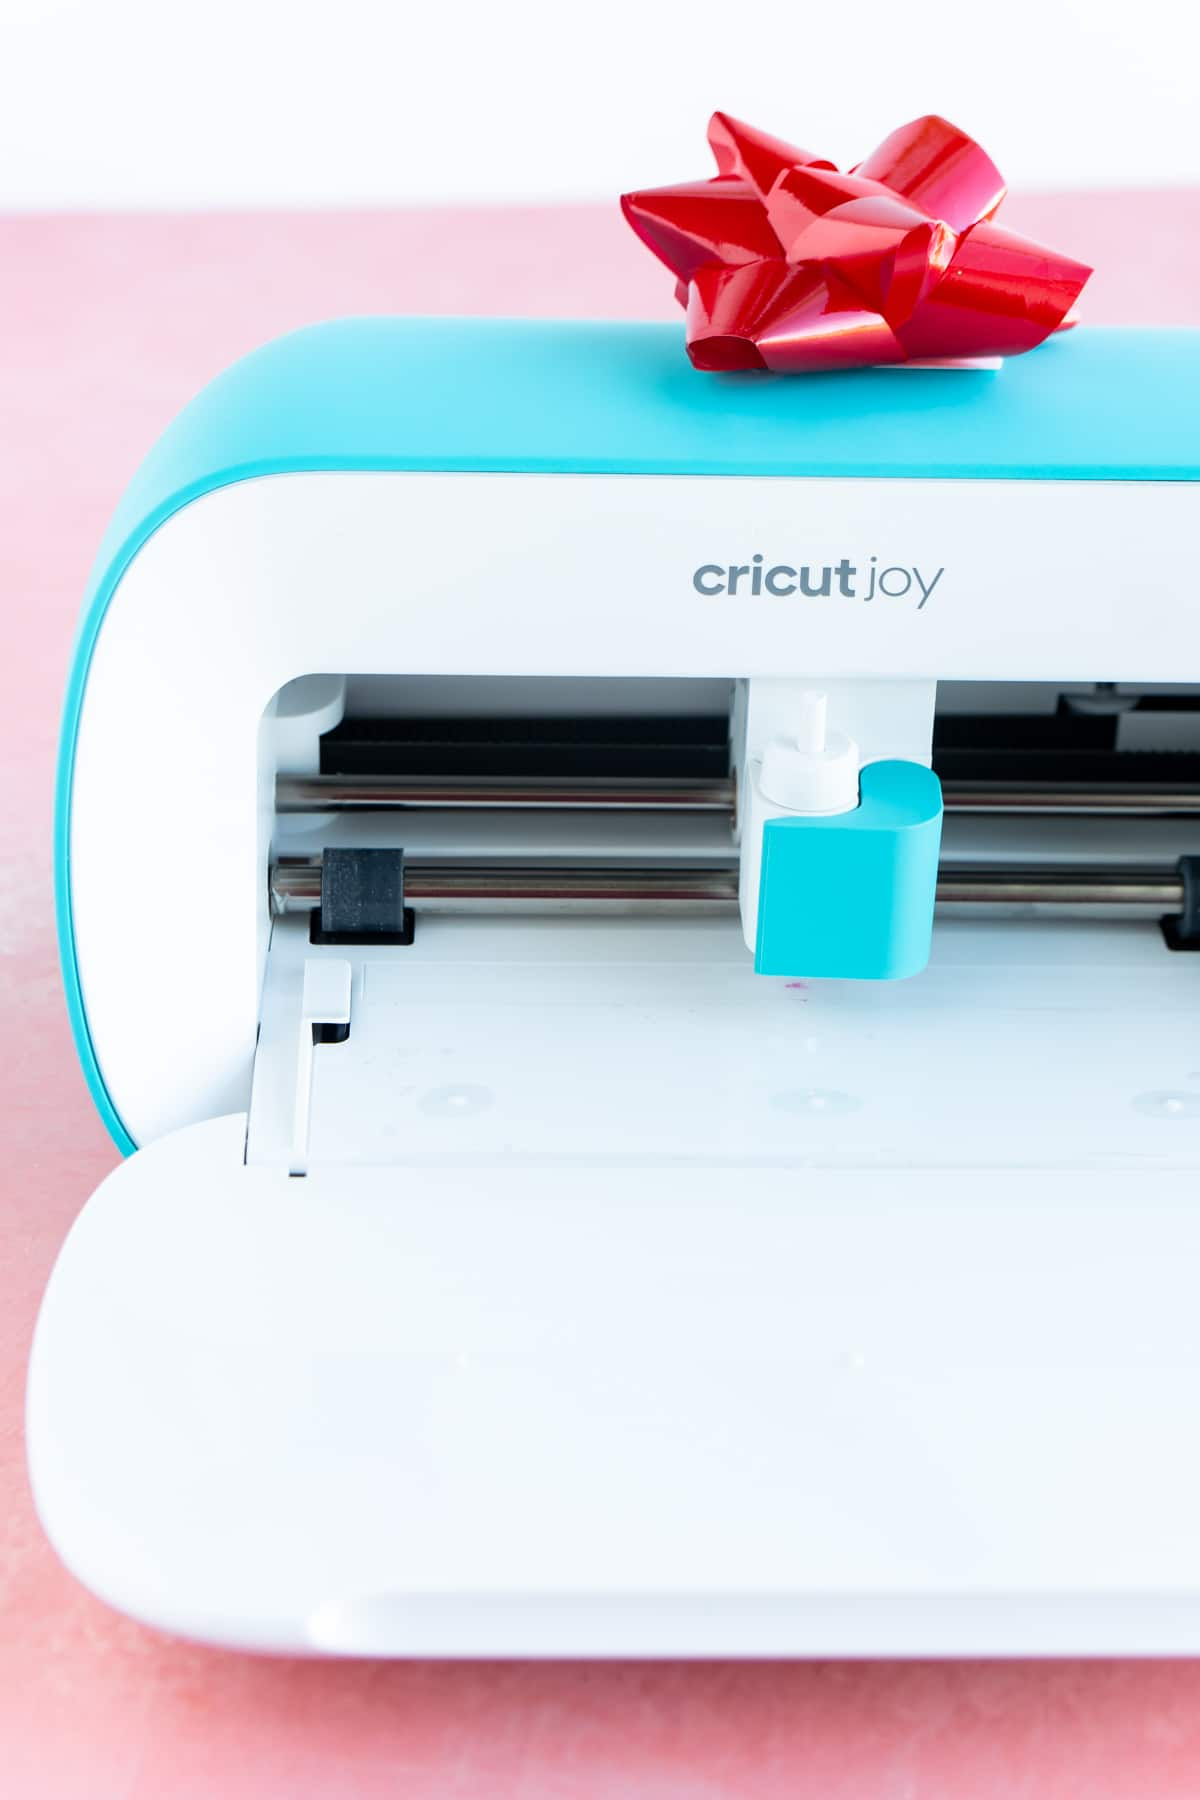 Cricut Joy with a red bow on top